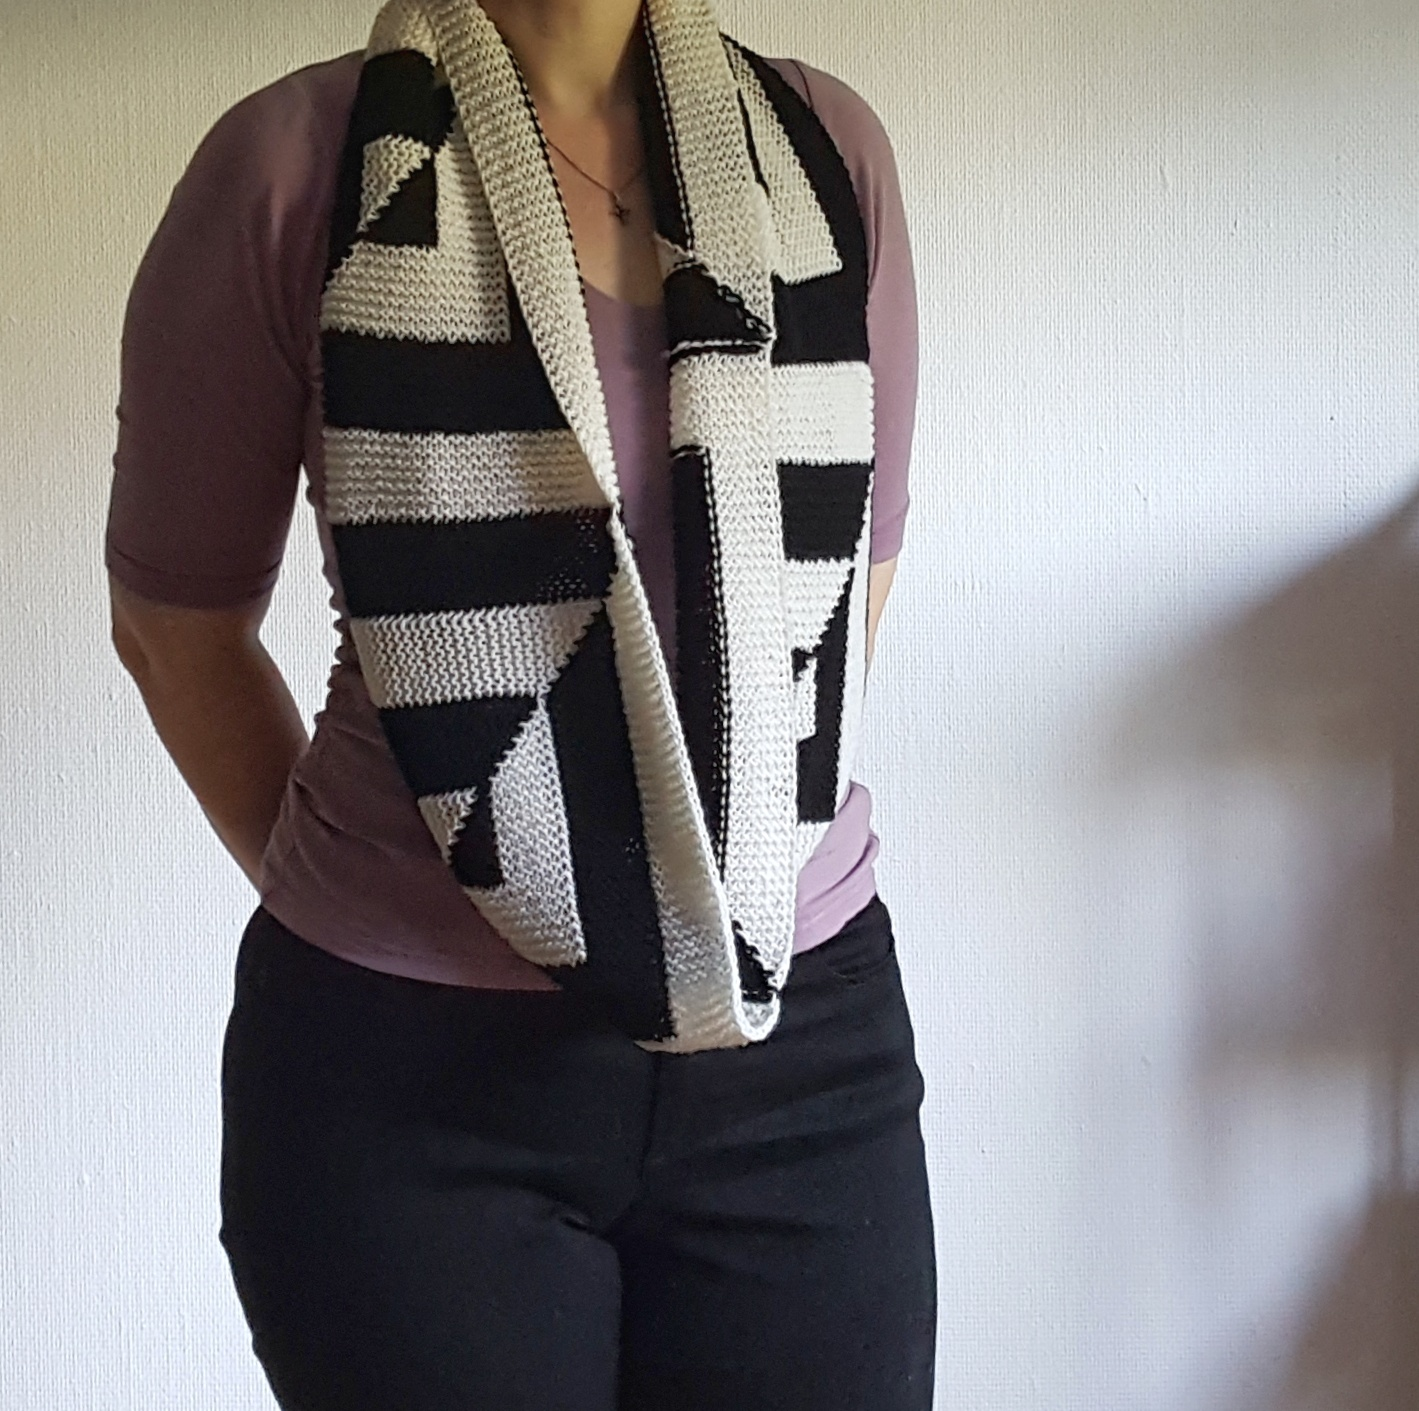 Knitting Wrap And Turn Pick Up : Knitting and so on skew symmtery cowl